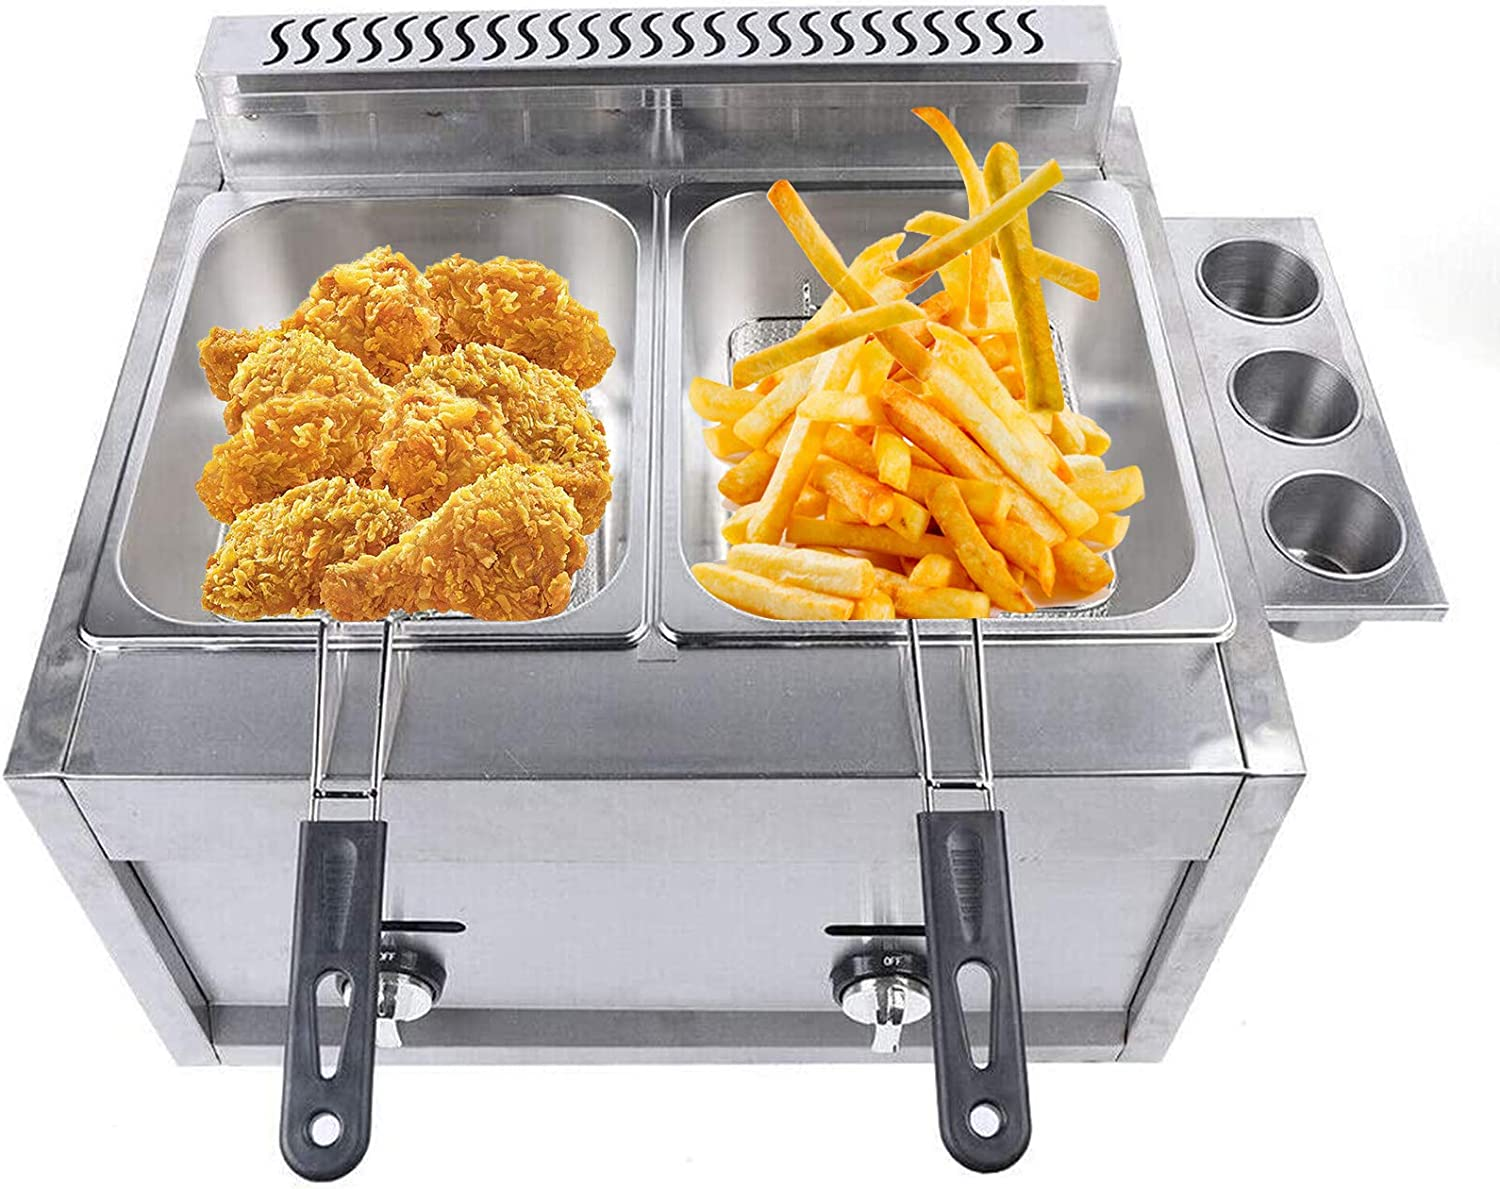 Professional Deep Fryer,Dual Tank Stainless Steel Chicken Chips Fryer with Basket Scoop for Commercial Restaurant Countertop Family Food Cooking 6L 570x450x420mm